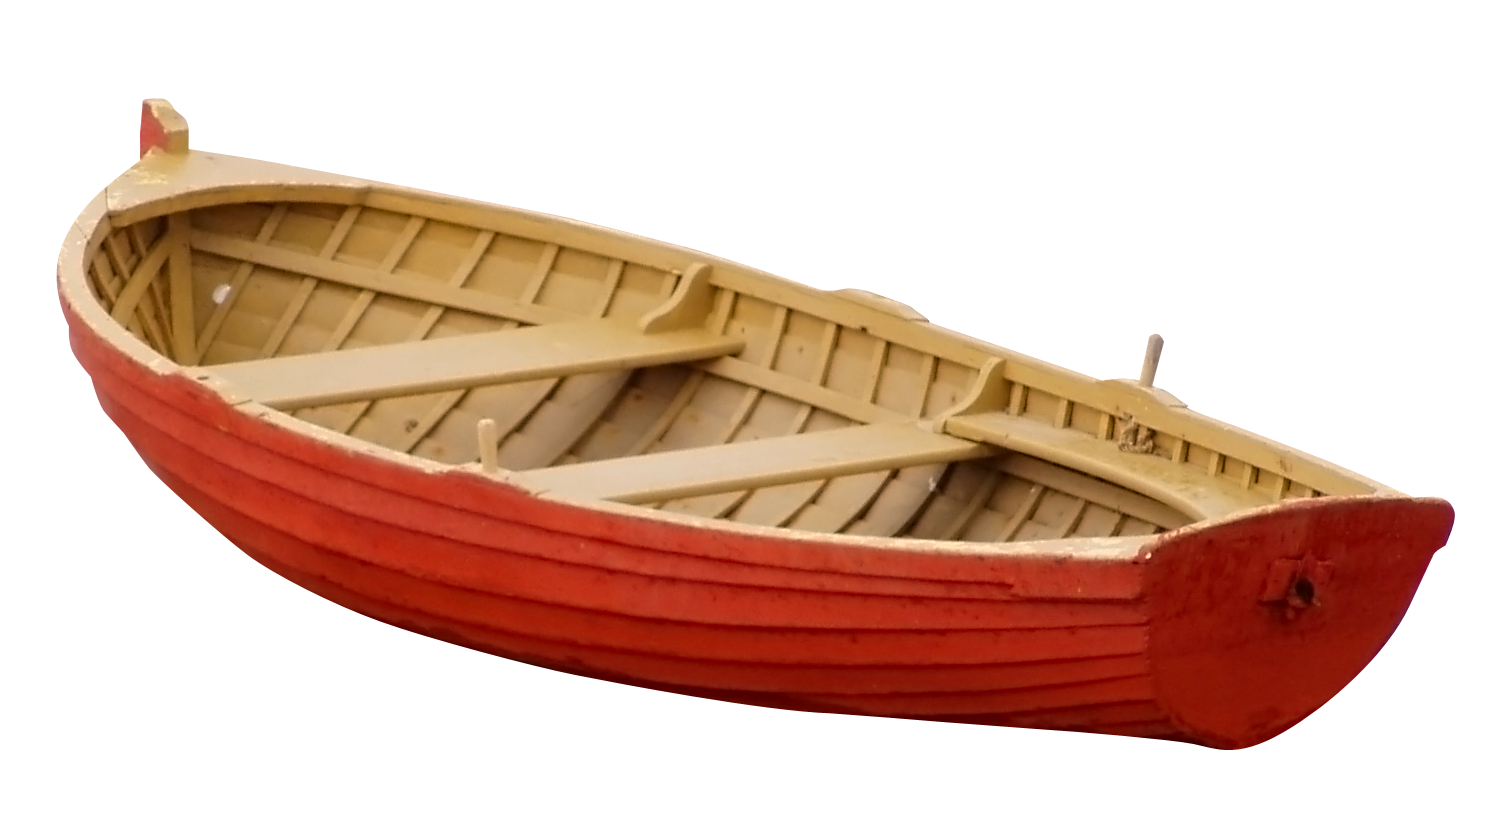 boat_png32.png